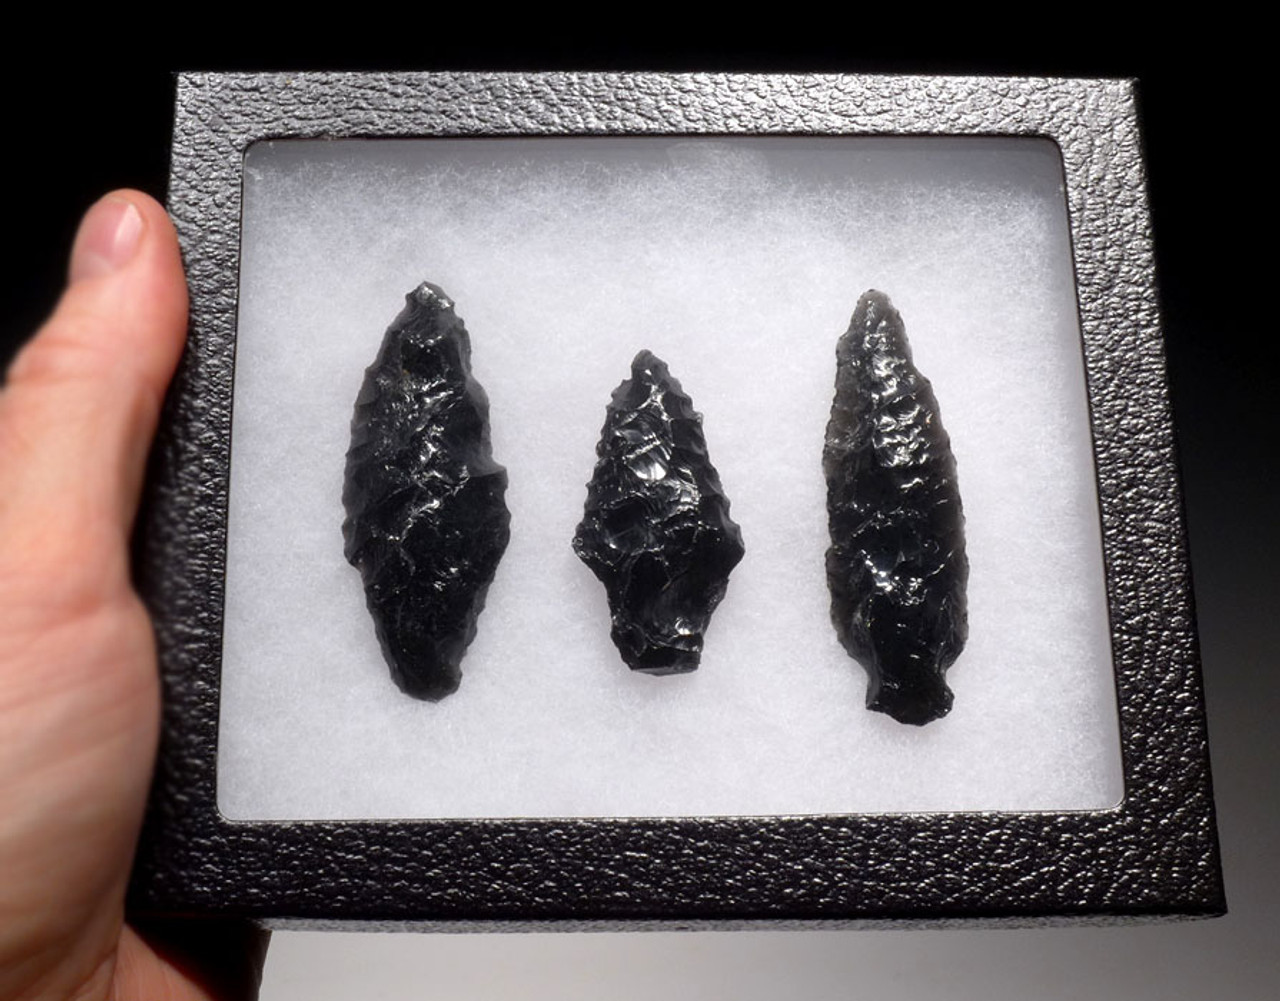 PC217 - CHOICE GRADE SET OF 3 LARGE ATLATL PRE-COLUMBIAN OBSIDIAN SPEARHEADS OF DIFFERENT DESIGNS